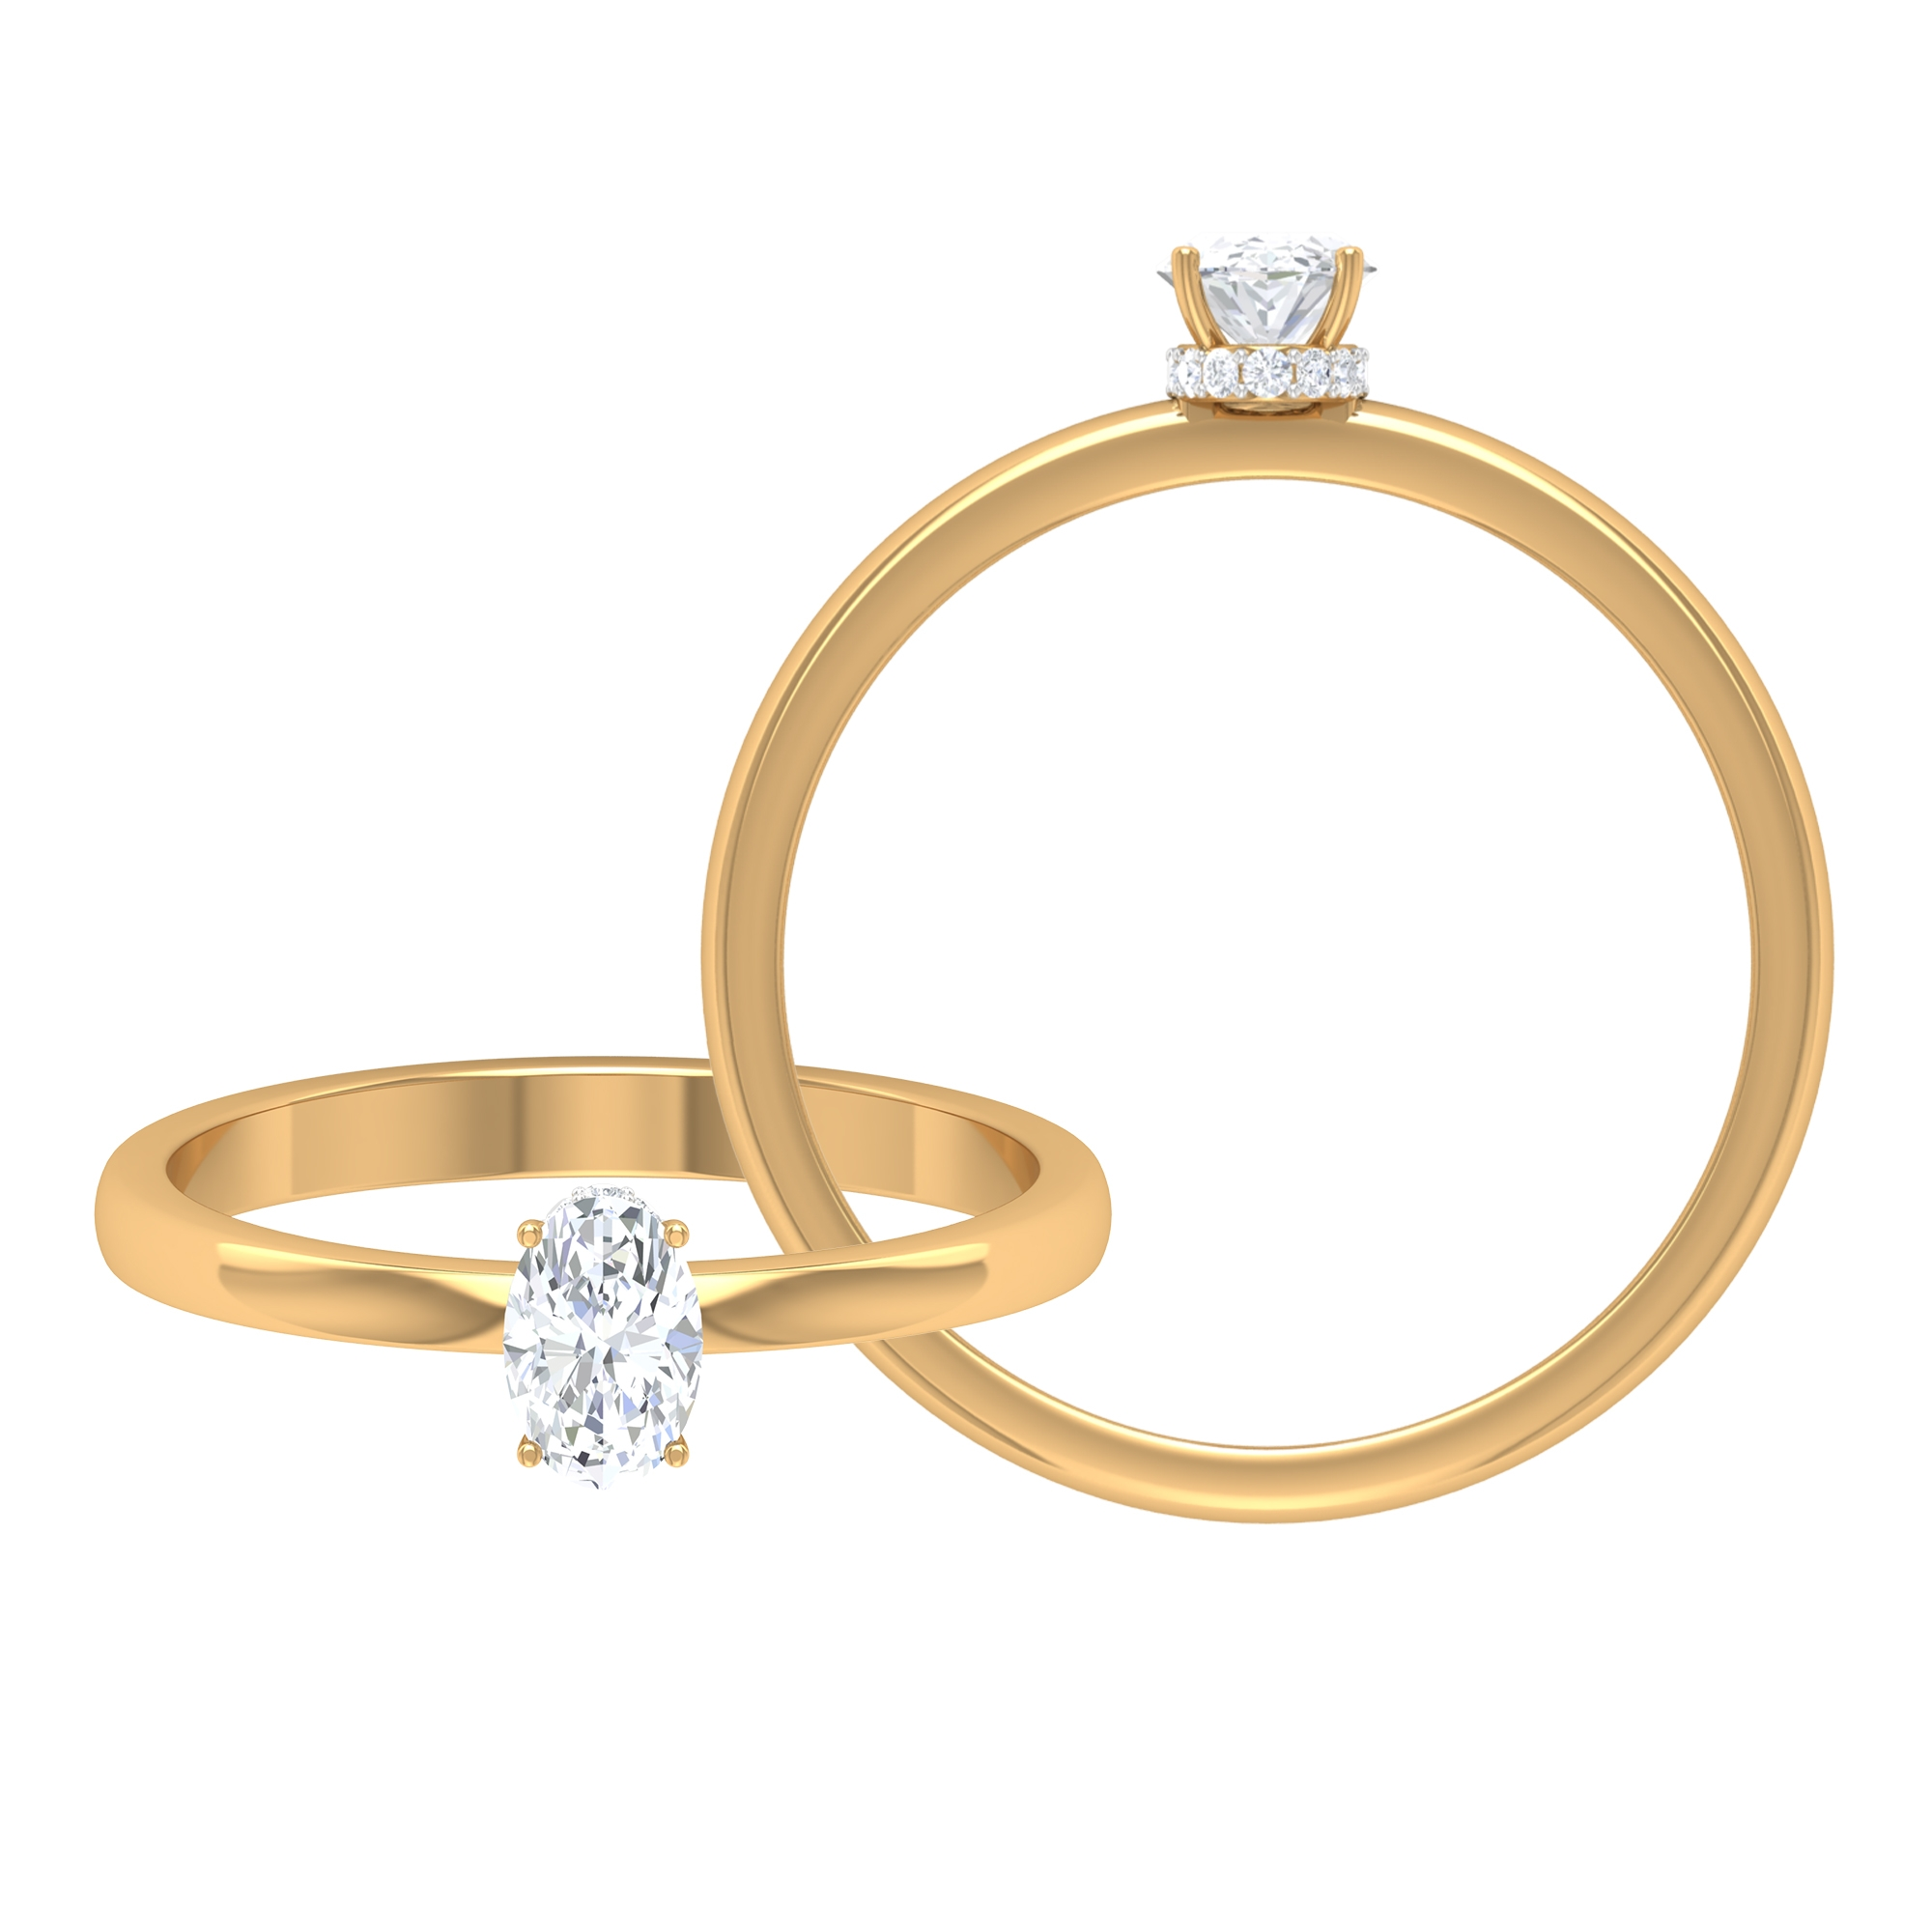 Four Prong Set 4X6 MM Oval Cut Diamond Solitaire Ring in Hidden Halo Style